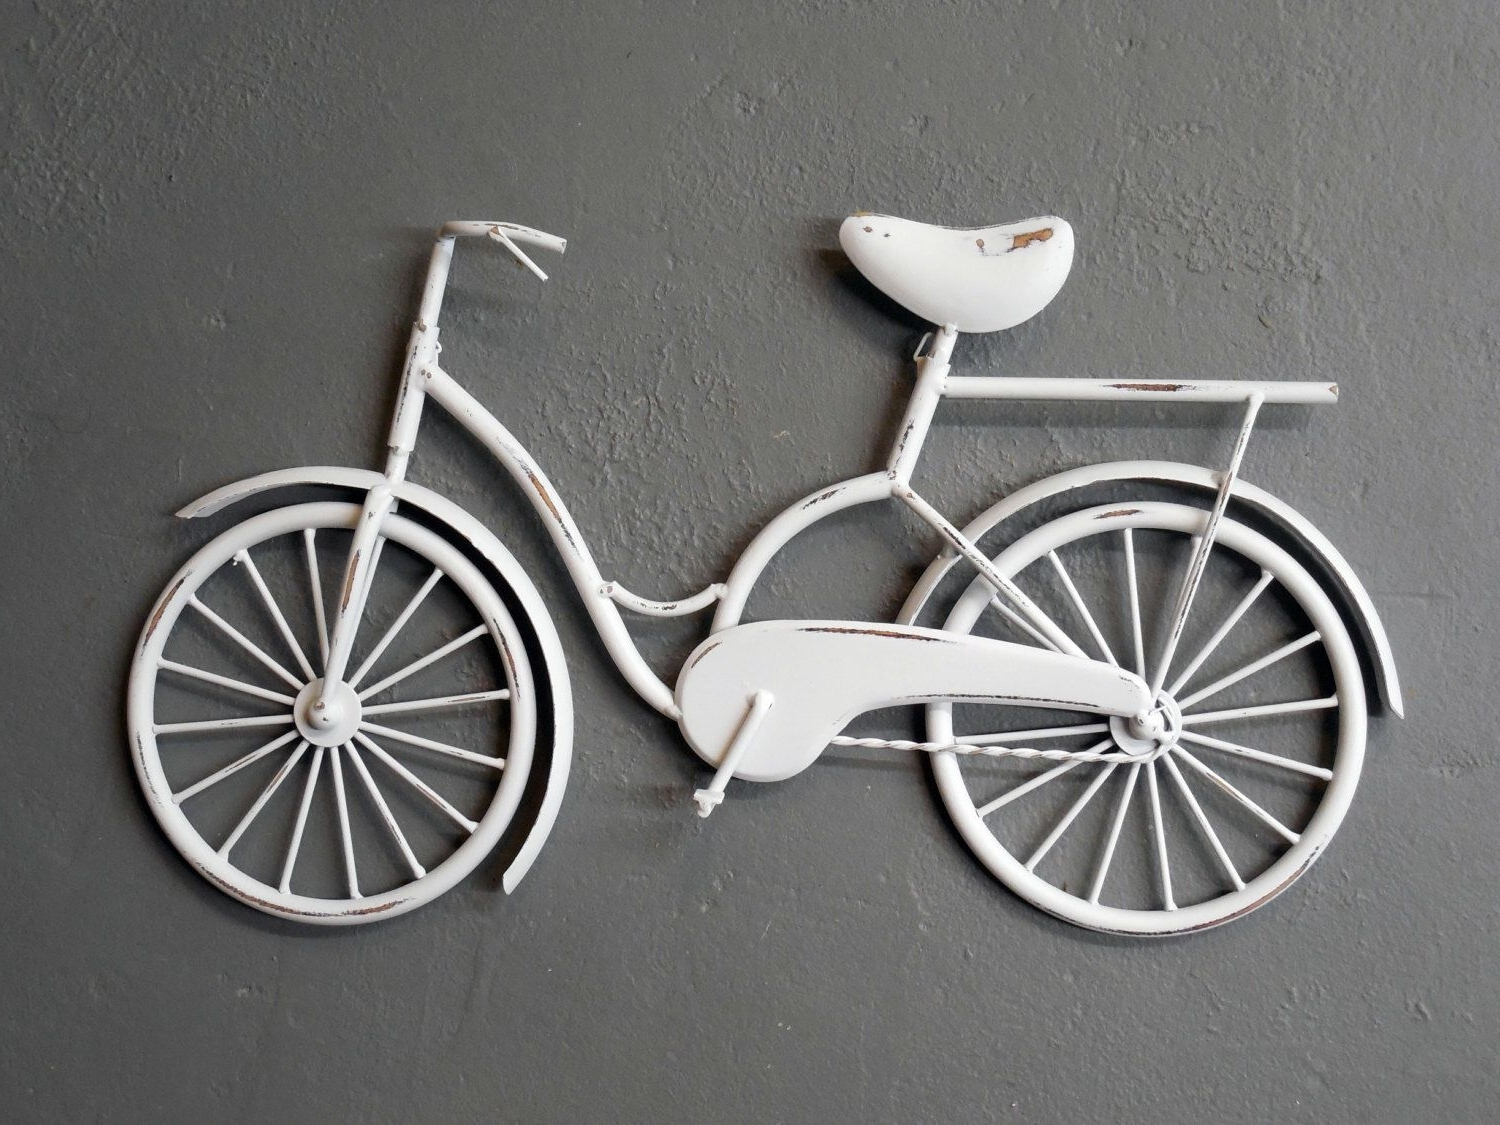 Popular Bicycle Wall Art Intended For Bicycle Wall Art/ Wall Decor/bicycle/beach Decor/bicycle Decor (View 9 of 15)